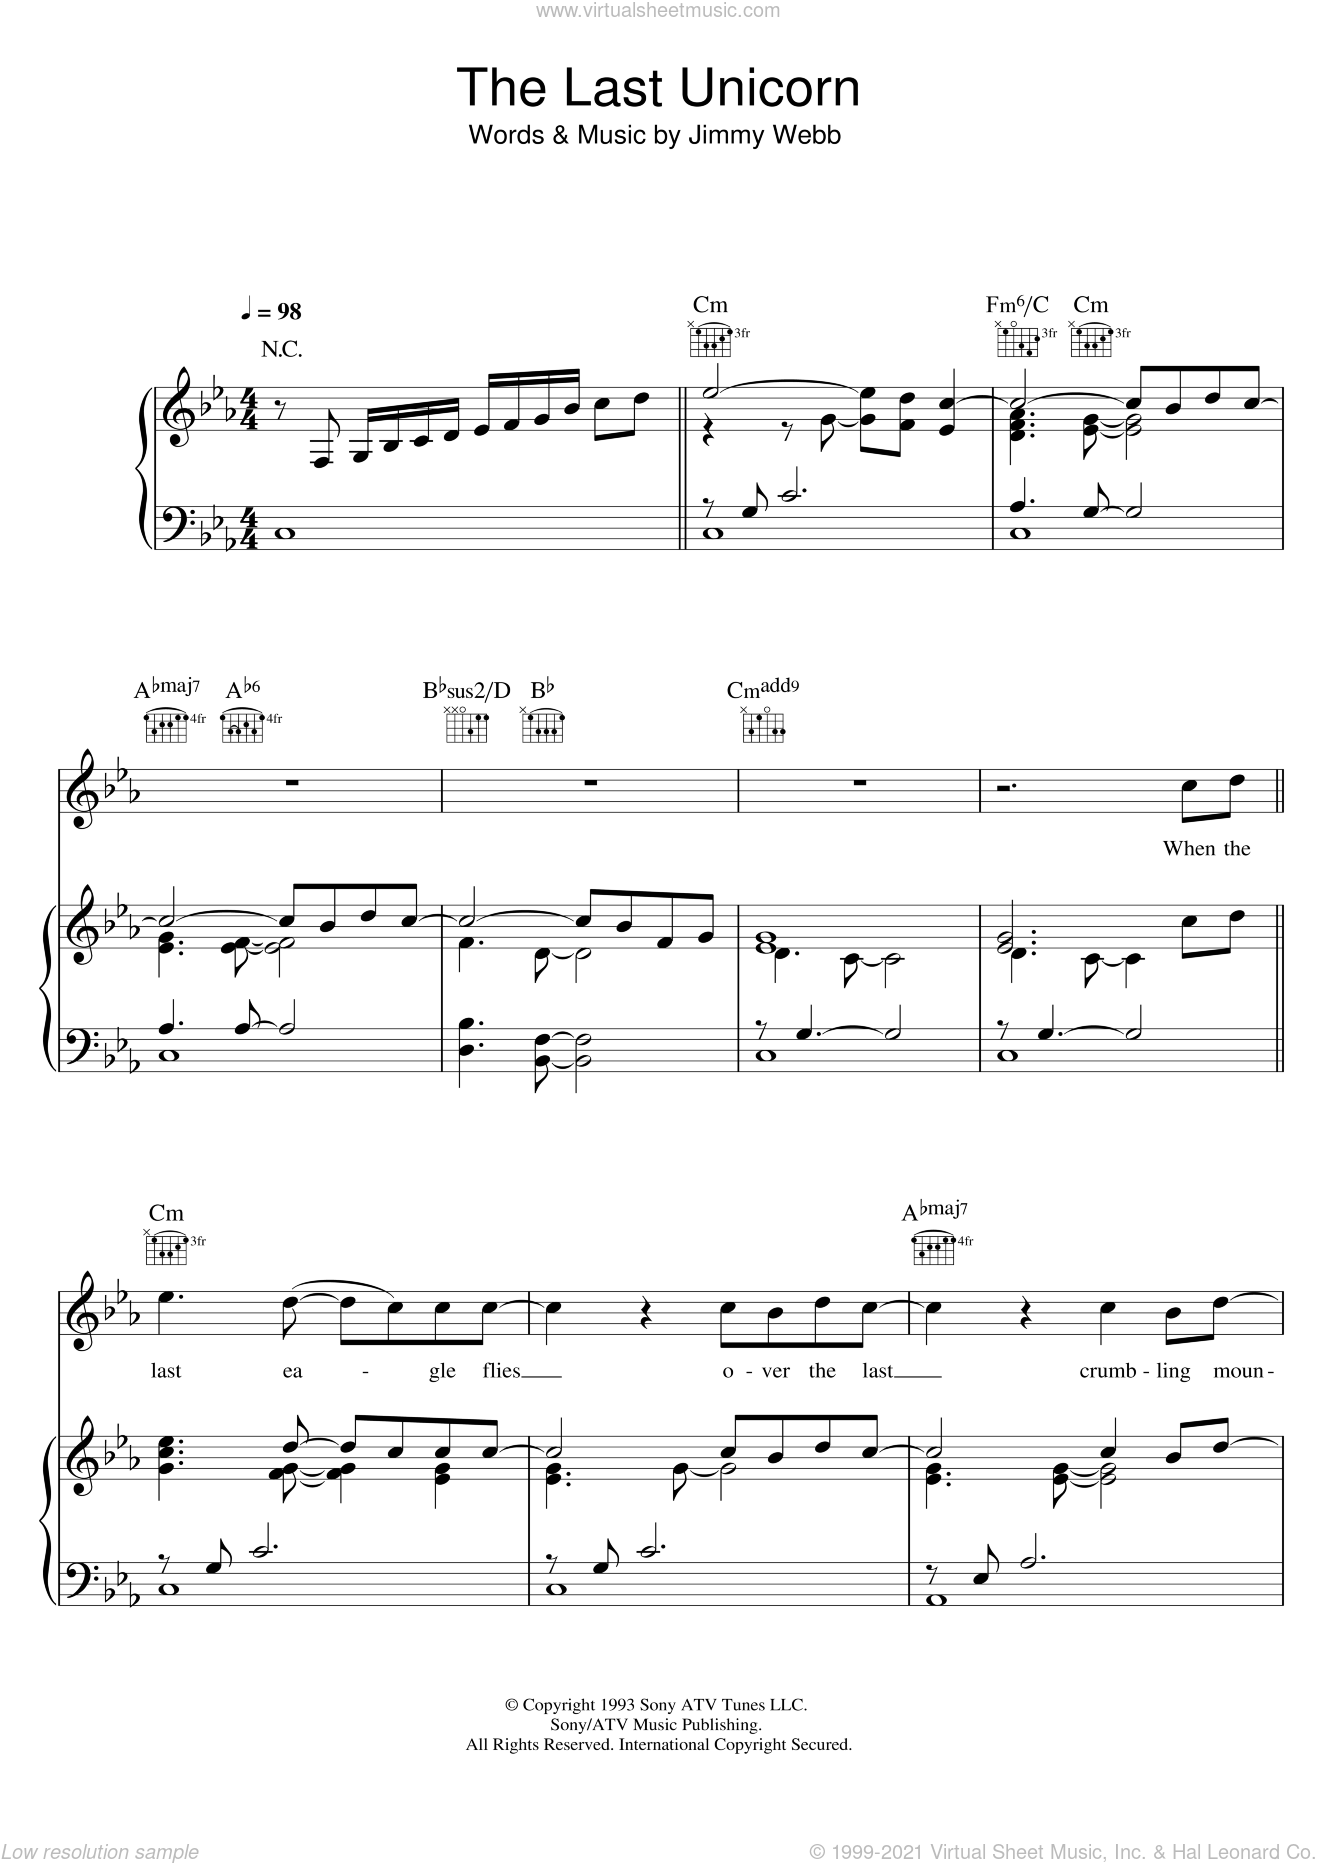 The Last Unicorn sheet music for voice, piano or guitar by America and Jimmy Webb, intermediate skill level